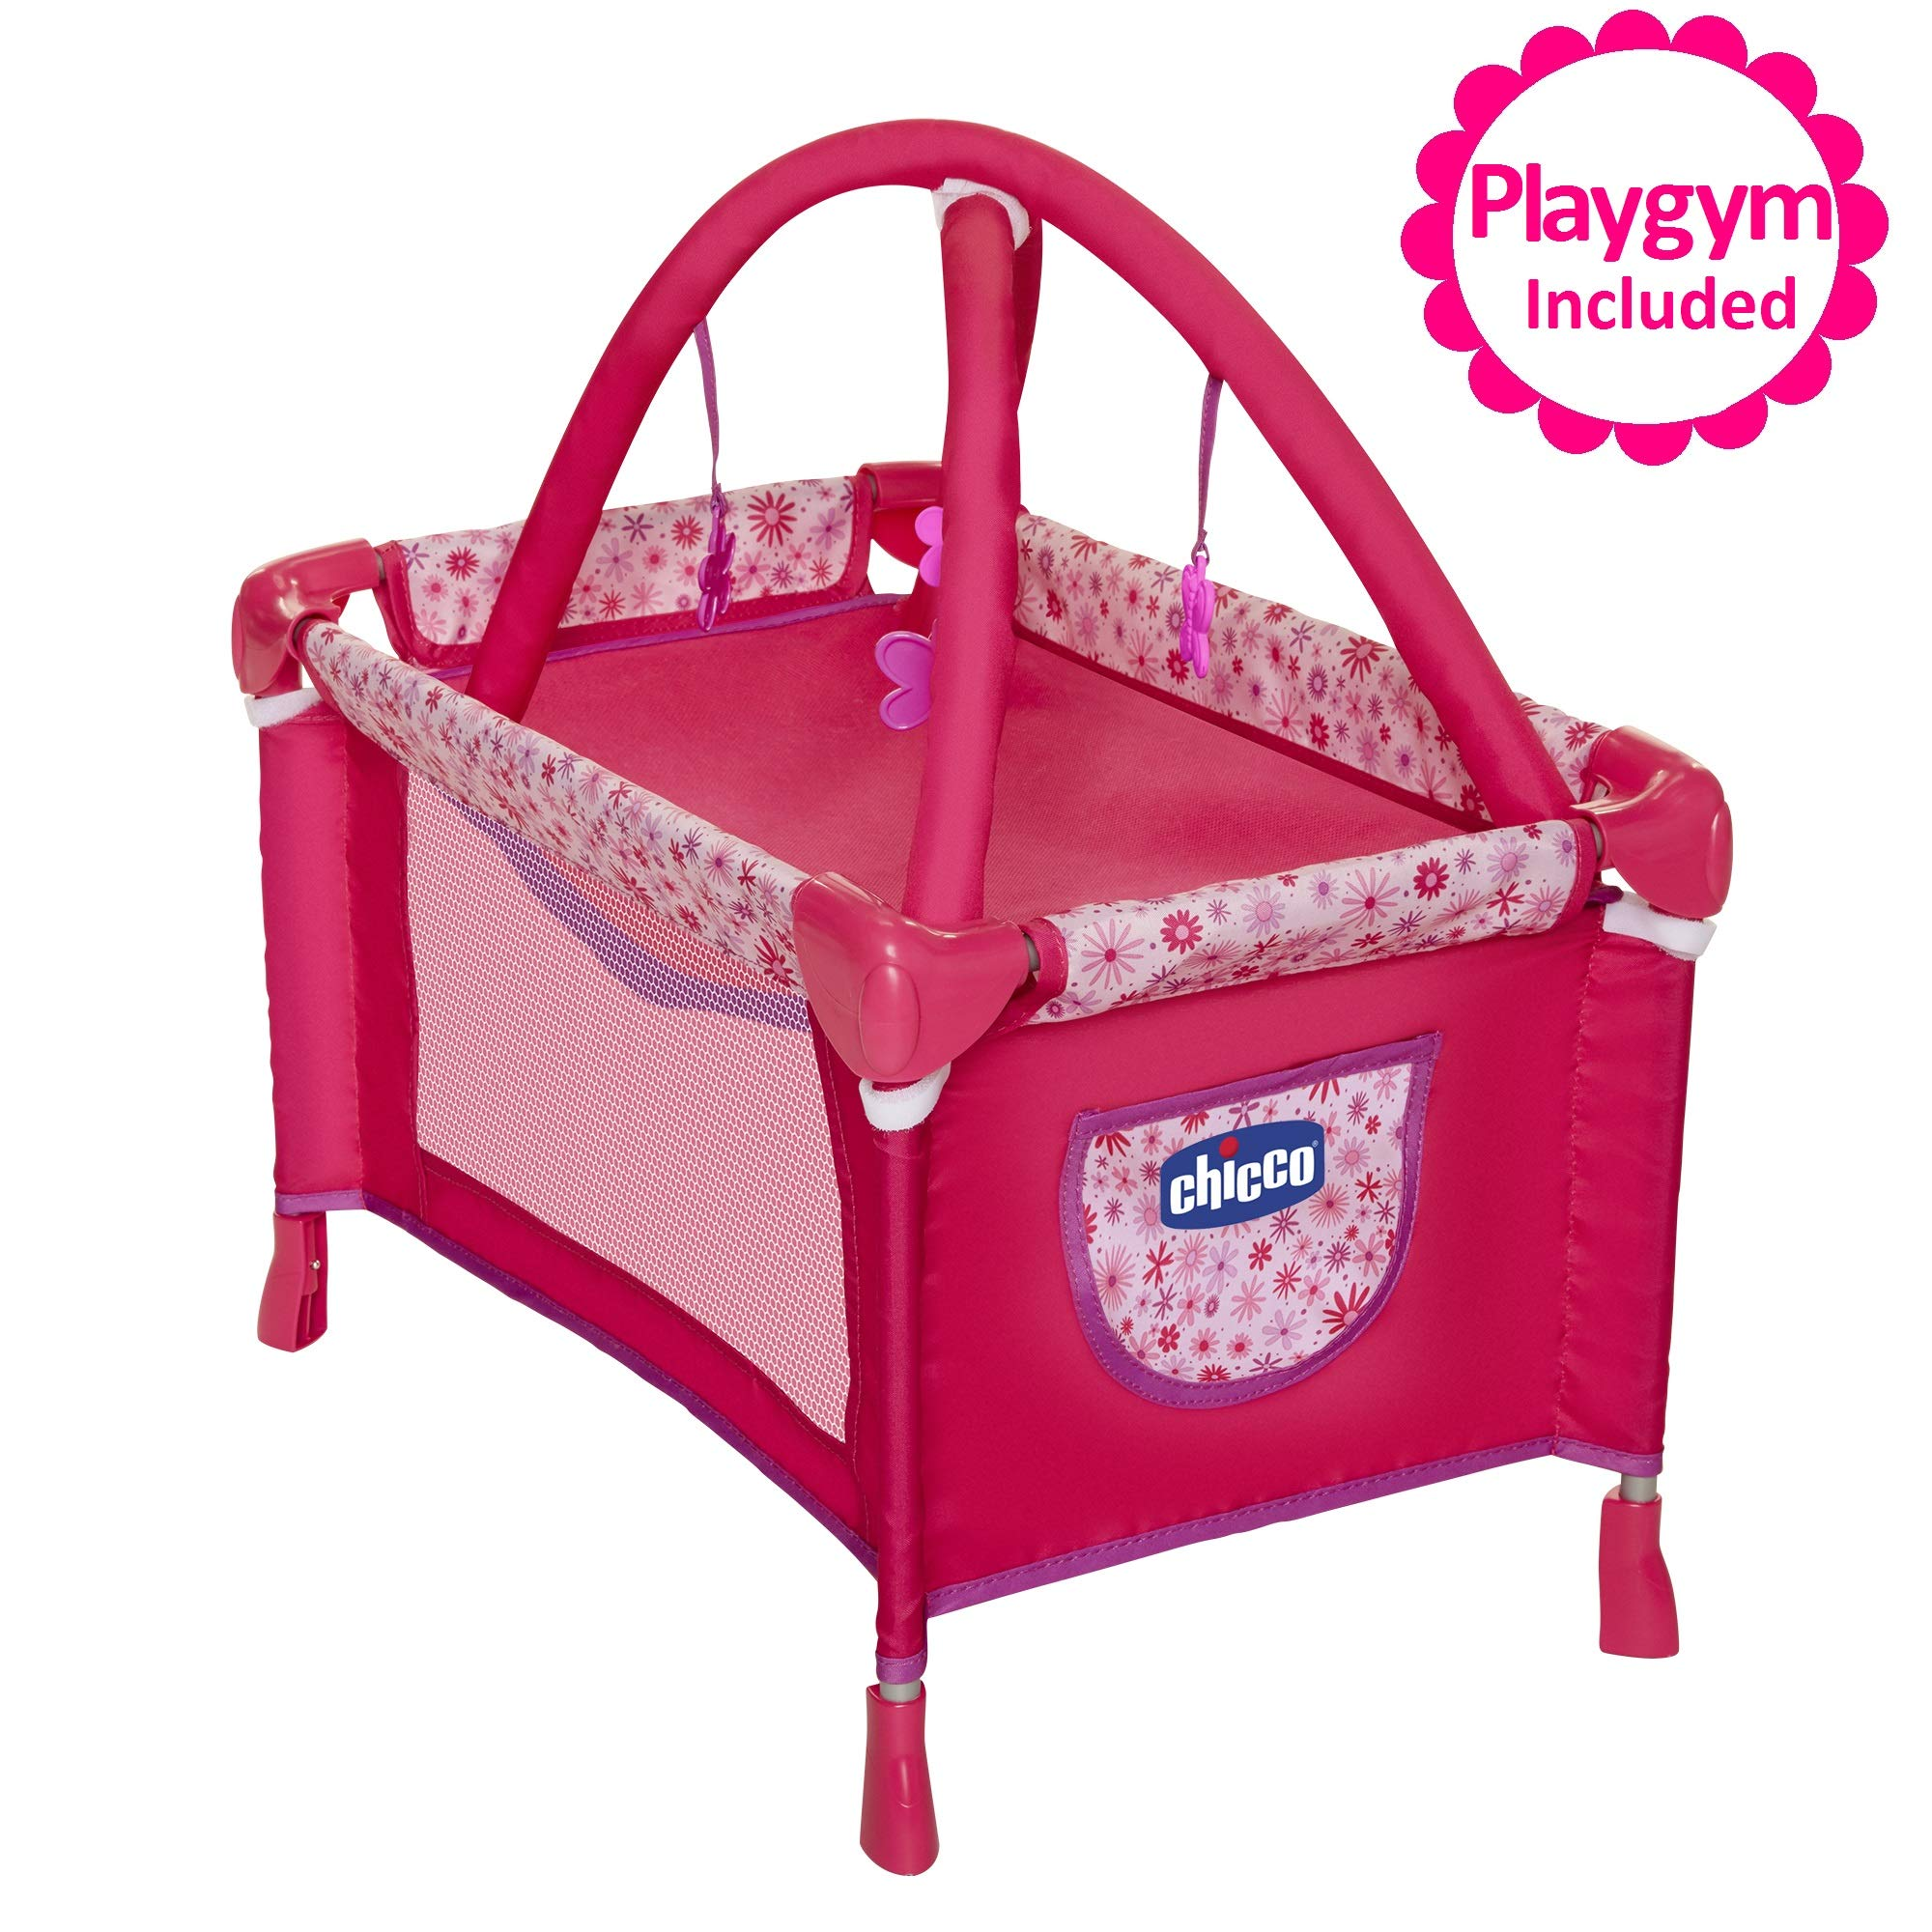 Baby Doll Playard Converts to Baby Doll Playmat, Baby Playpen with Mobile Included, Forup To 18'' Baby Dolls, Perfect Gift for Girls 3 Year Old & Up by Chicco